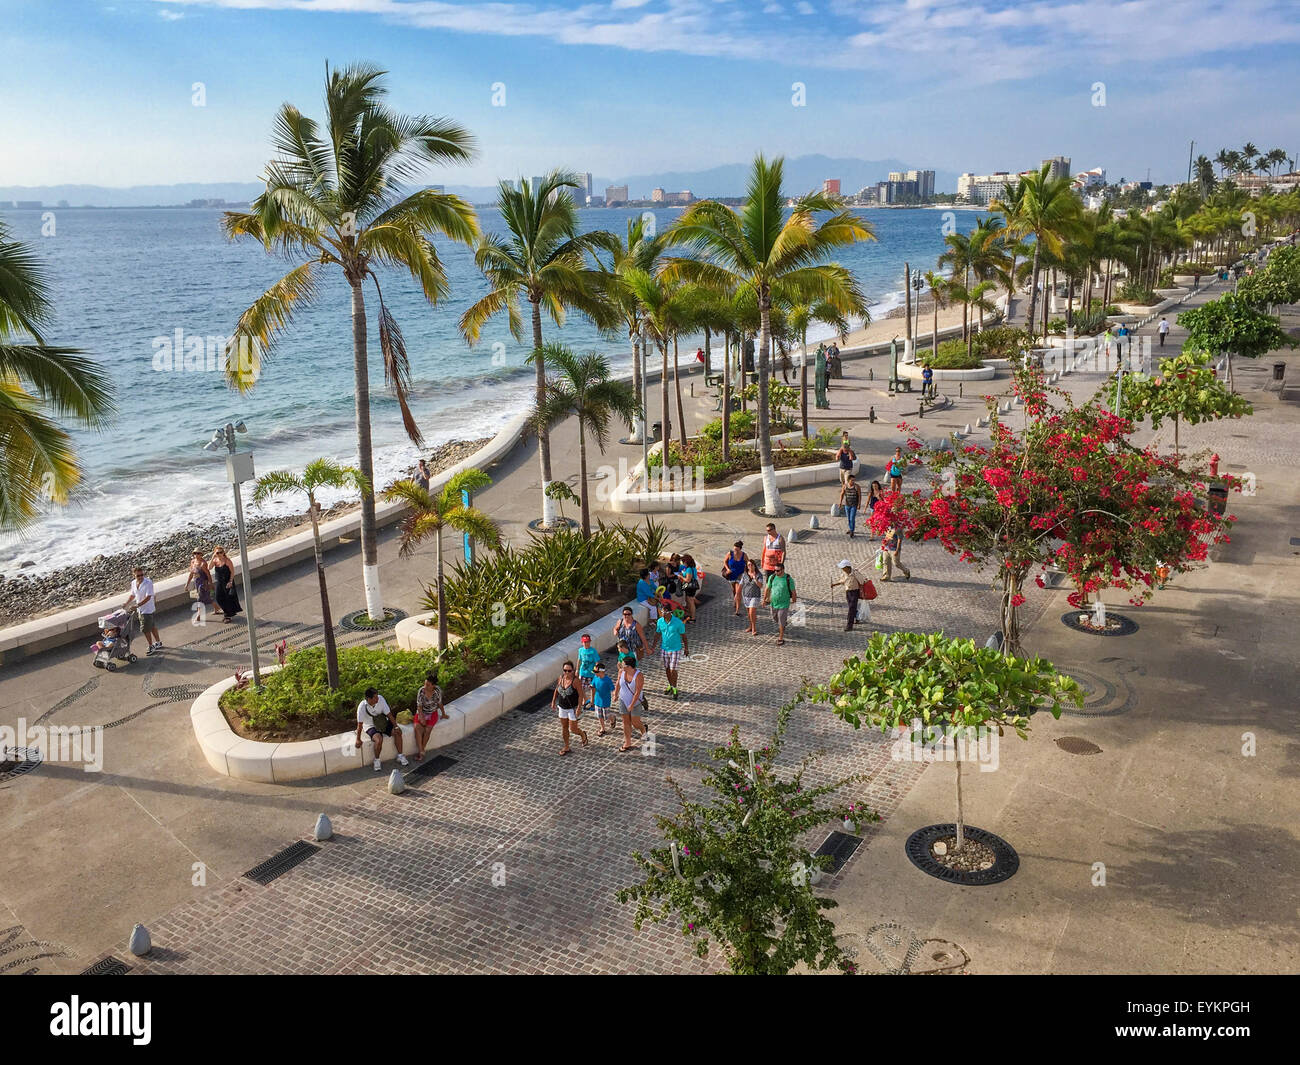 Die Oceanfront Malecon in Puerto Vallarta, Jalisco, Mexiko. Stockbild